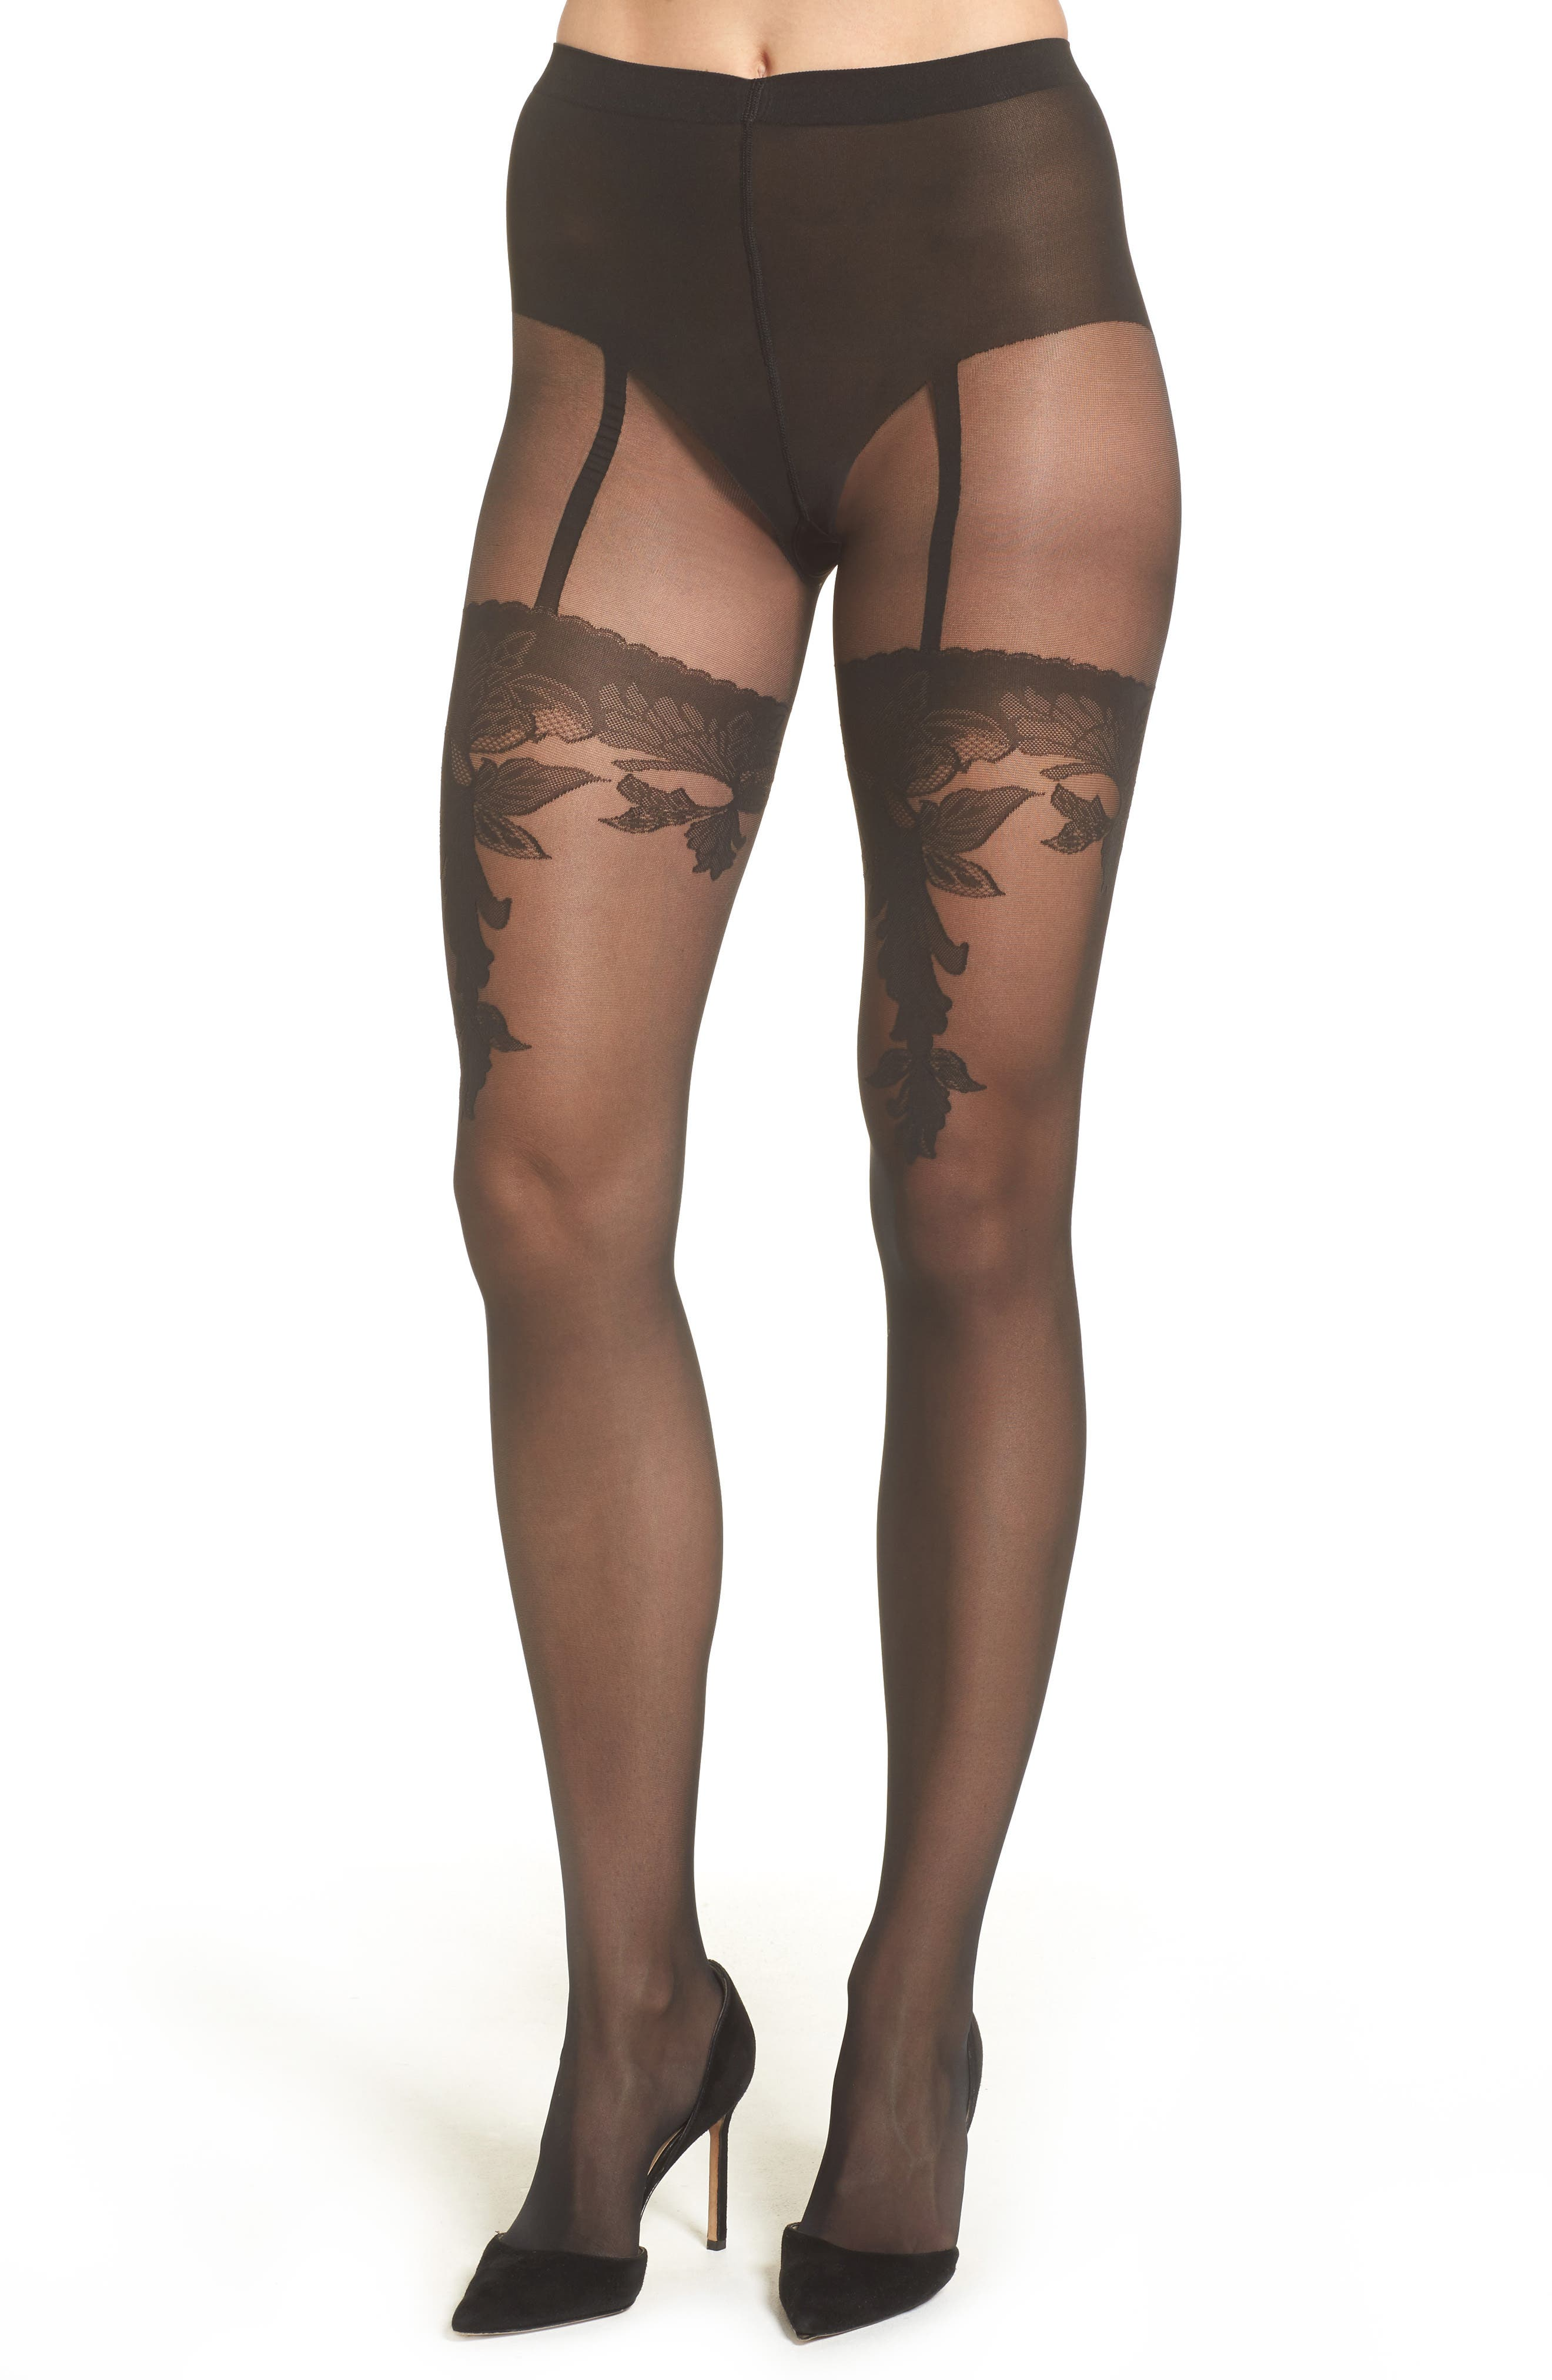 Allure Tights,                             Alternate thumbnail 2, color,                             001